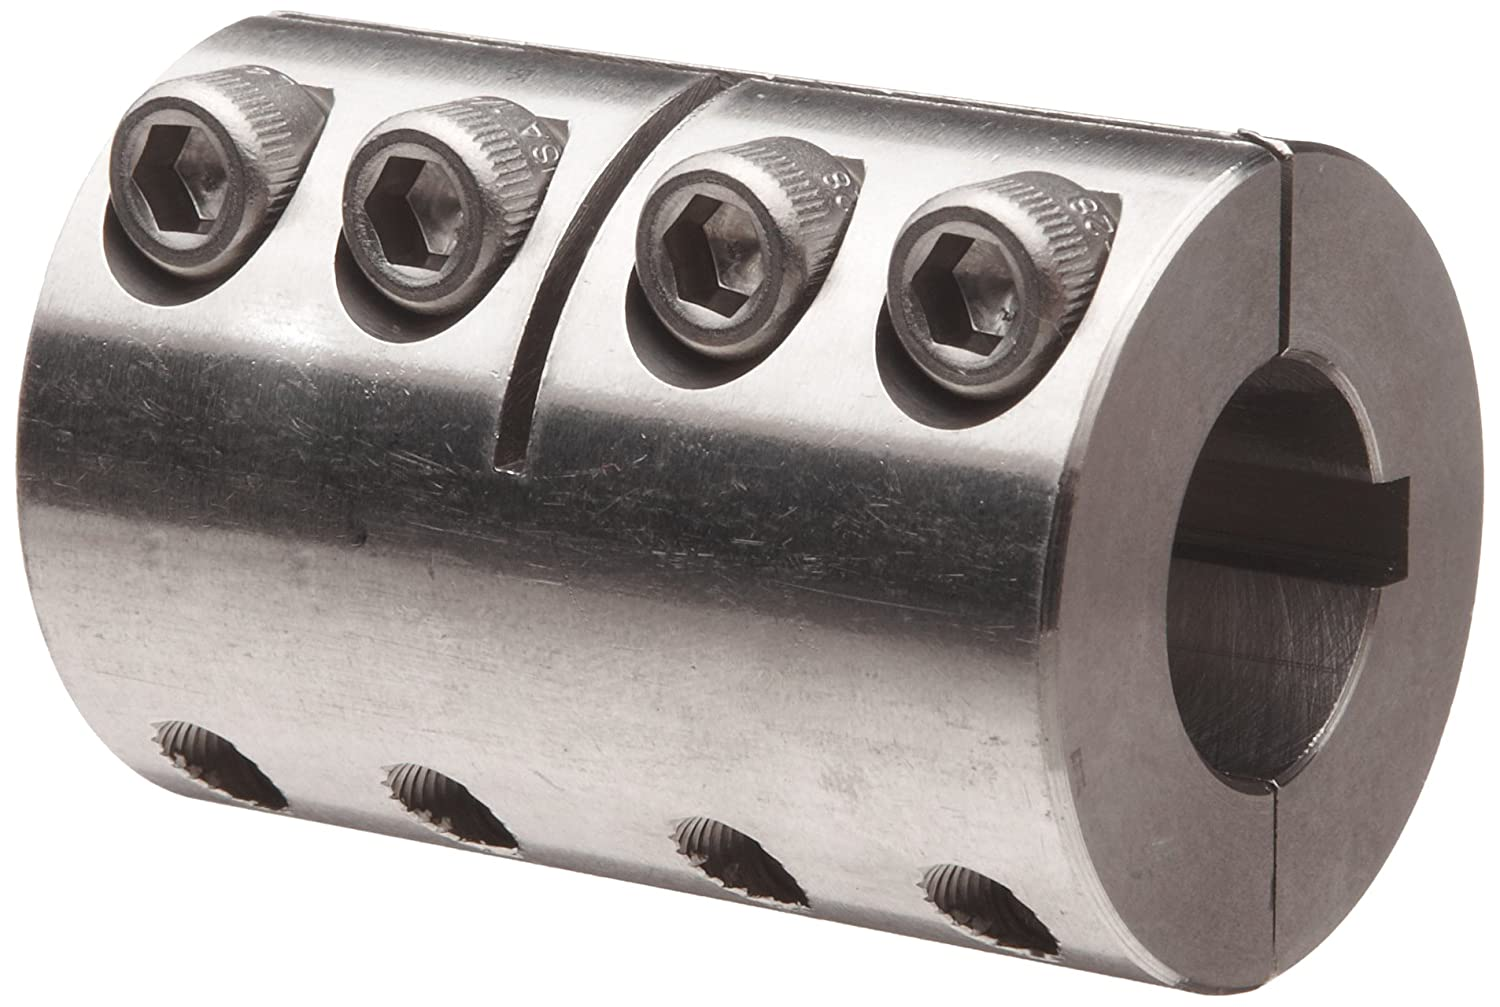 Ruland SPC-18-18-SS Two-Piece Clamping Rigid Coupling with Keyway, Stainless Steel, 1-1/8' Bore A Diameter, 1-1/8' Bore B Diameter, 1-7/8' OD, 3-1/8' Length, 1/4' x 1/4' Keyway Width